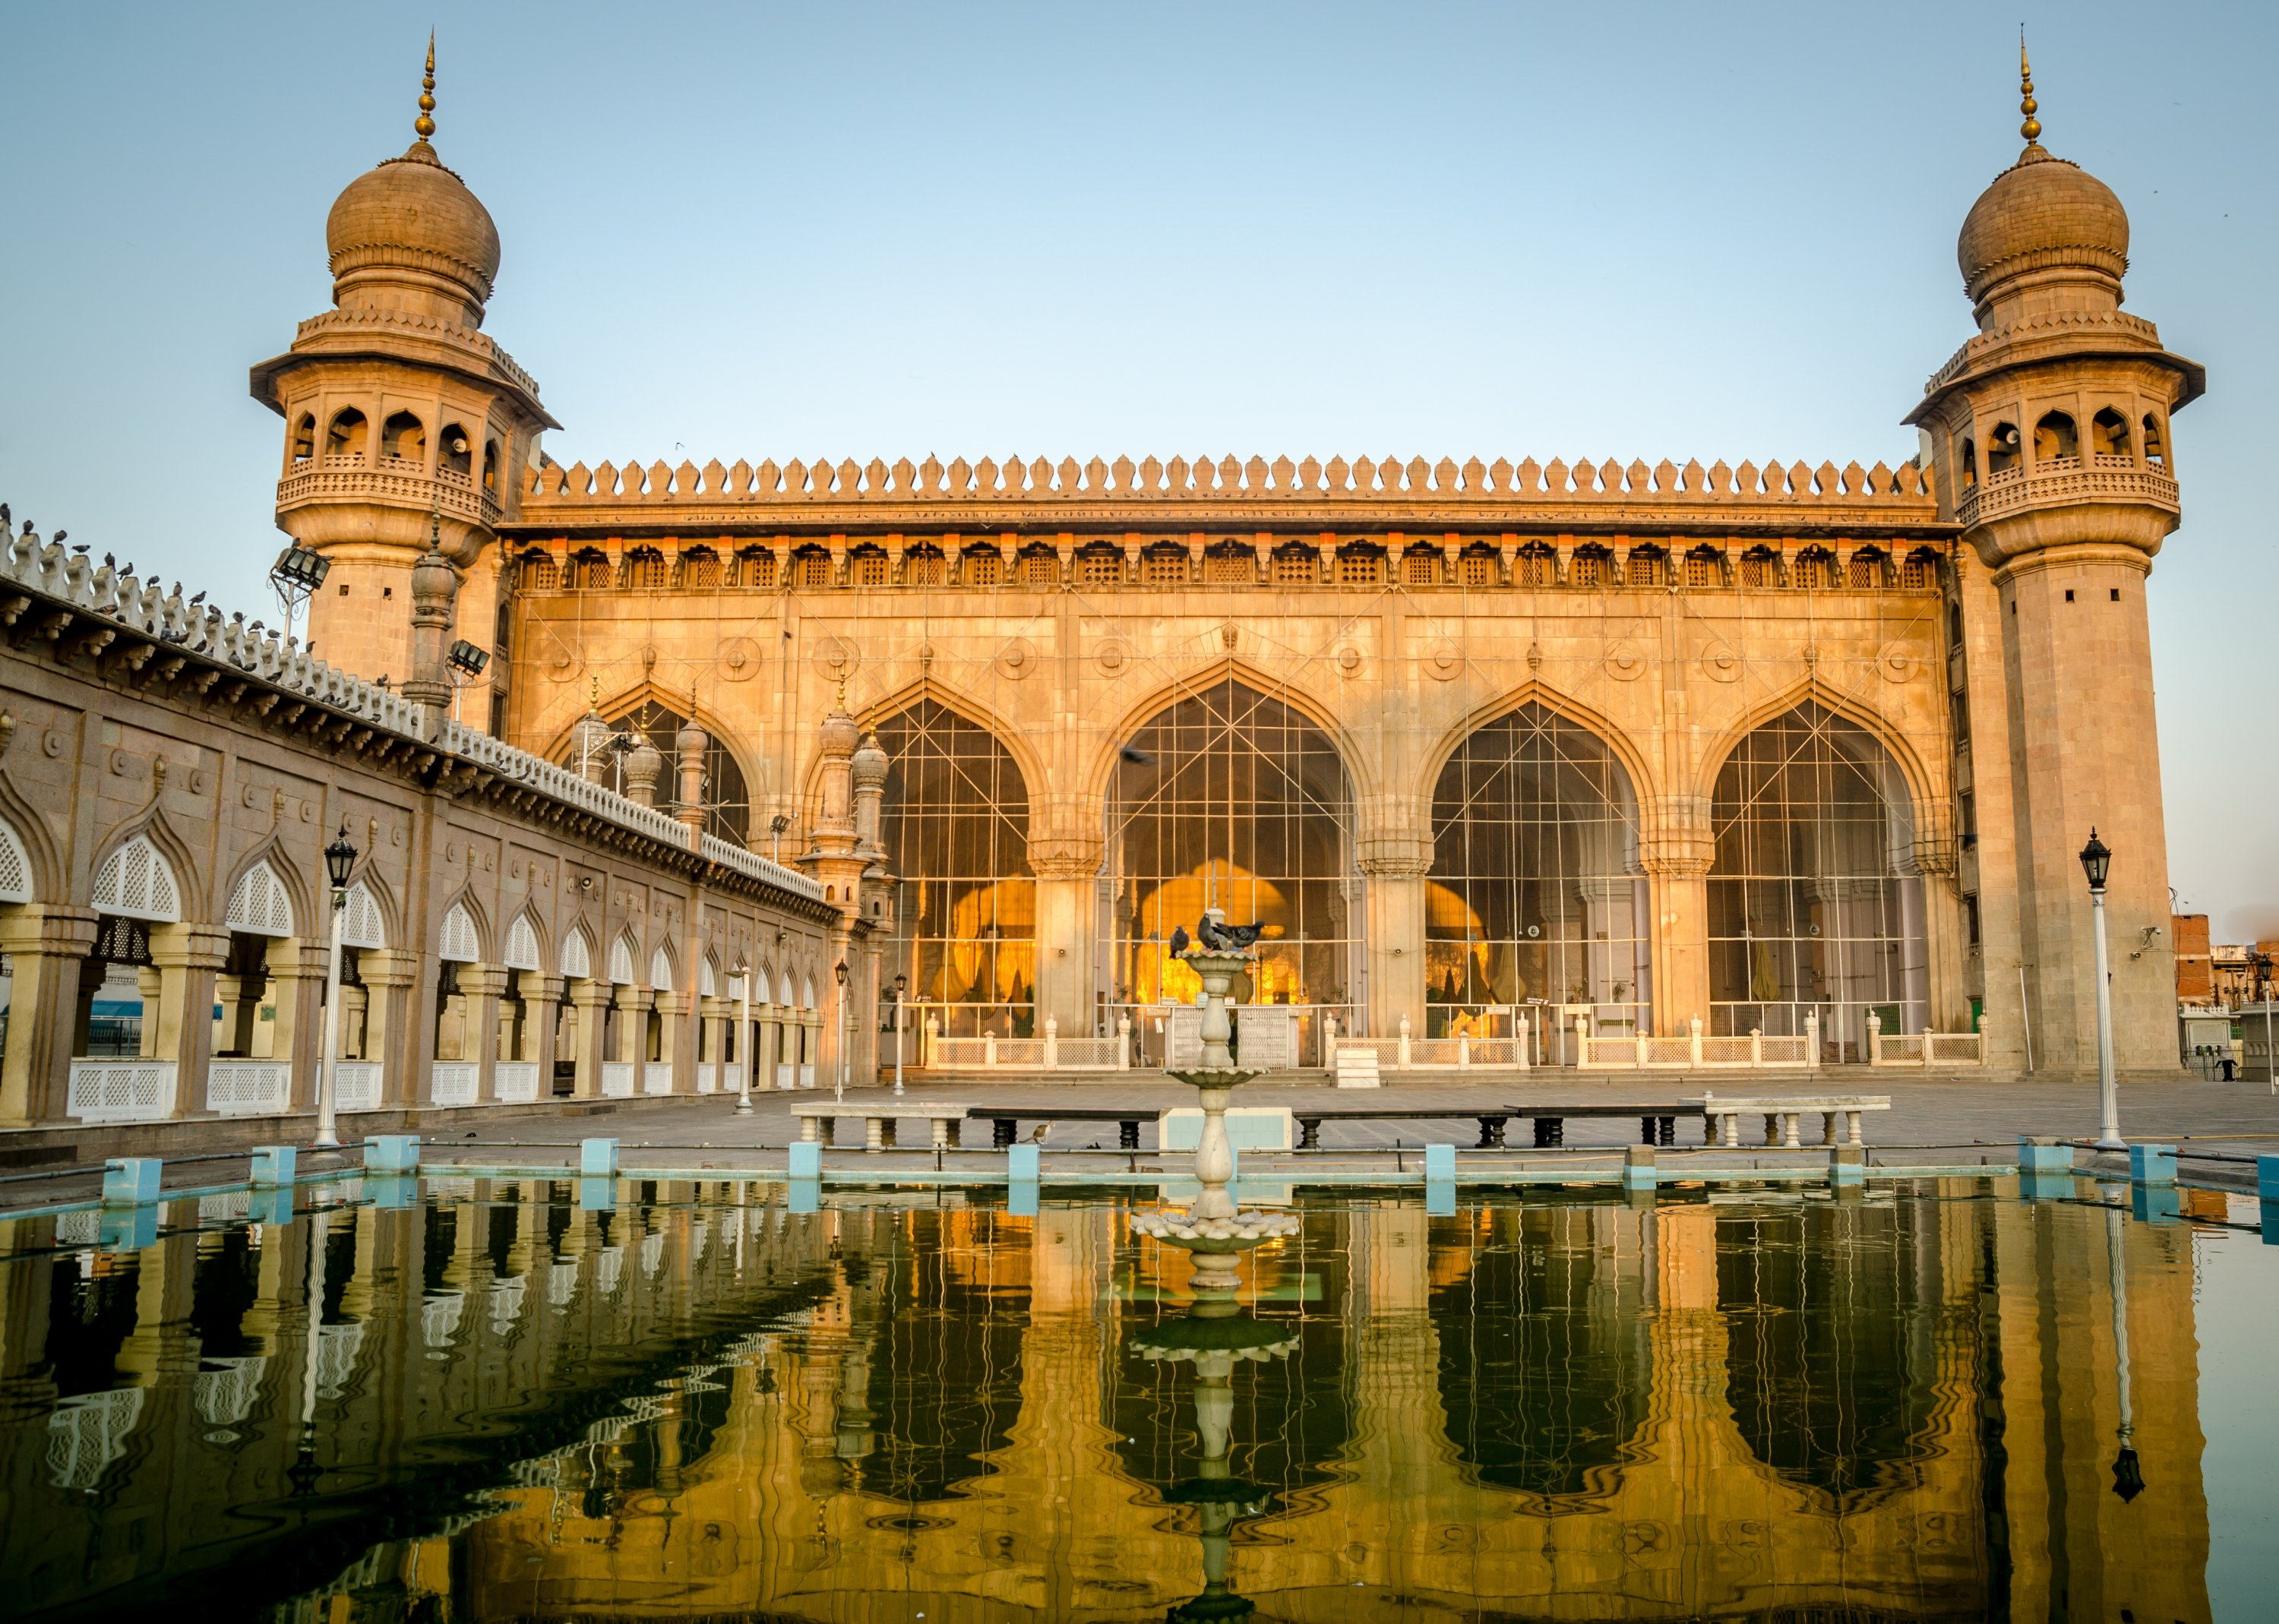 The Mecca Masjid of Hyderabad was built with stones or bricks made from the soil brought from Mecca. (Shutterstock Photo)